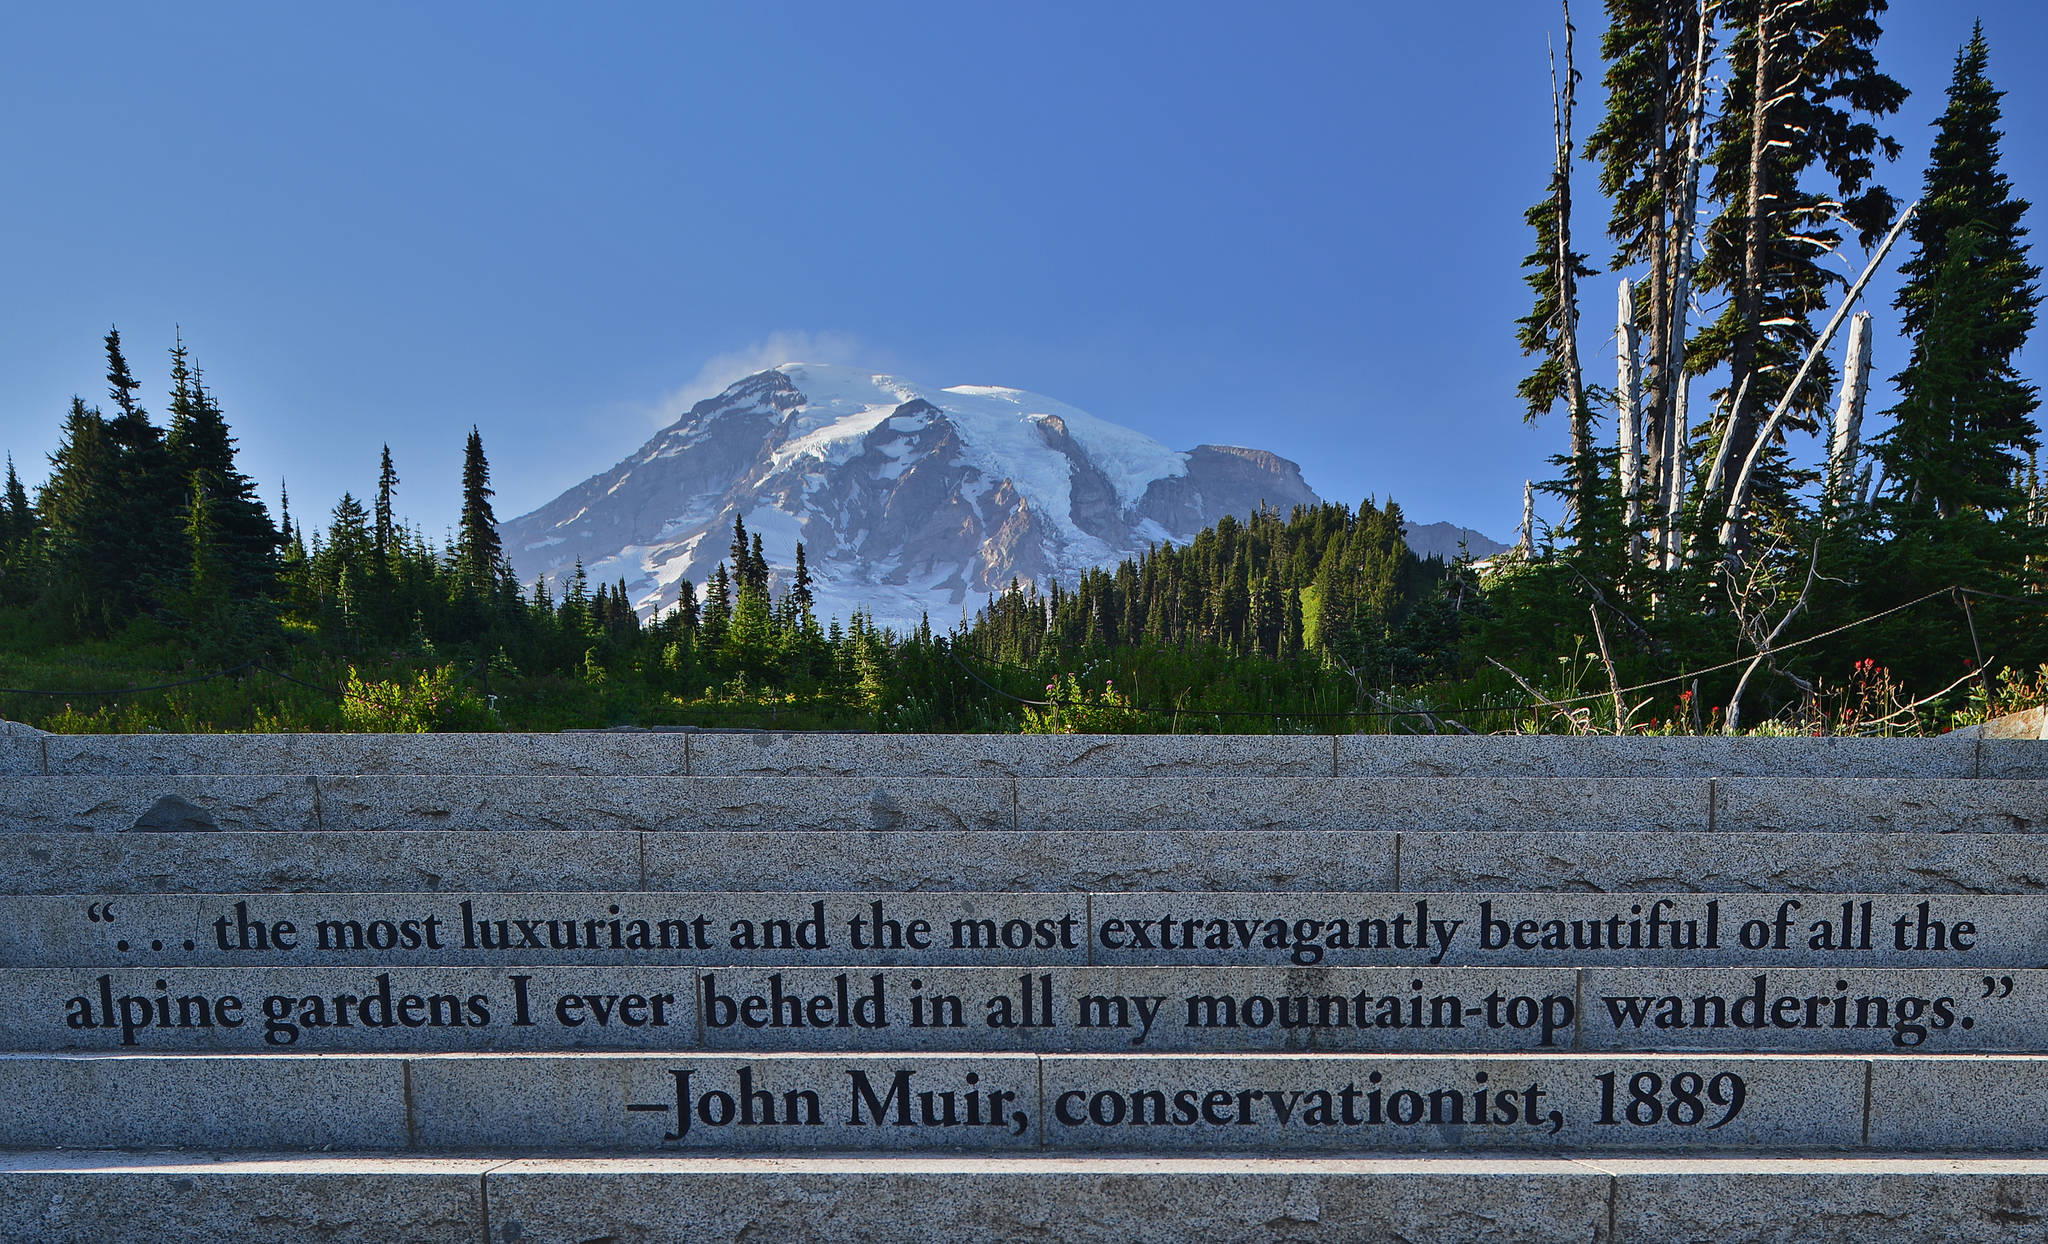 """This Aug. 17, 2016 photo provided by John Chao shows the Muir Steps, Paradise area inside Mount Rainier National Park in Washington. Steps engraved with a quote from famed naturalist John Muir lead up to the Paradise area trails in the park. These are popularly referred to as the """"Muir Steps."""" (John Chao via AP)"""